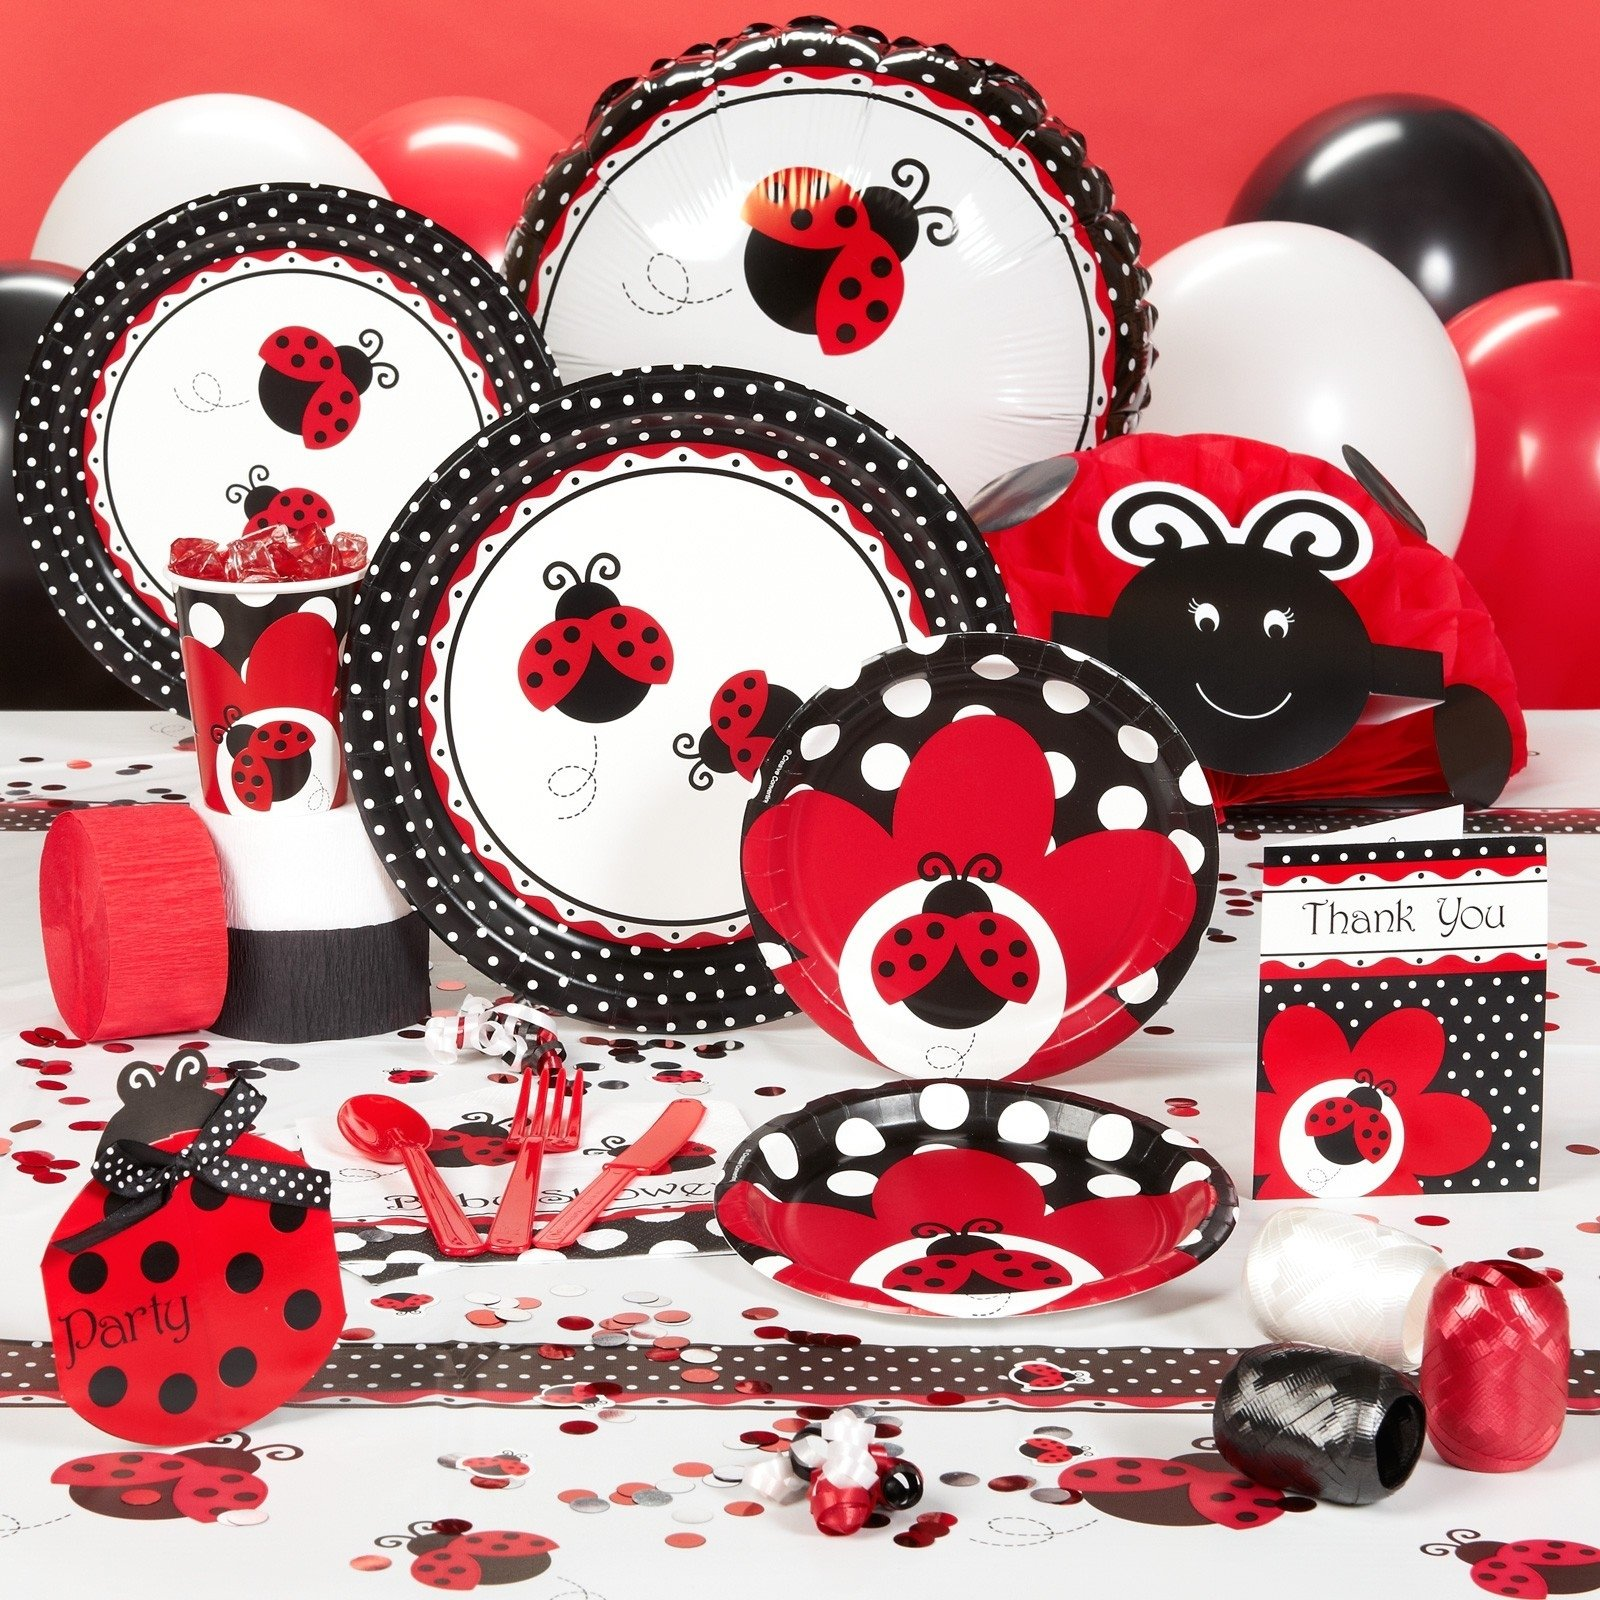 10 Attractive Lady Bug Baby Shower Ideas ladybug fancy birthday and baby shower complete line including